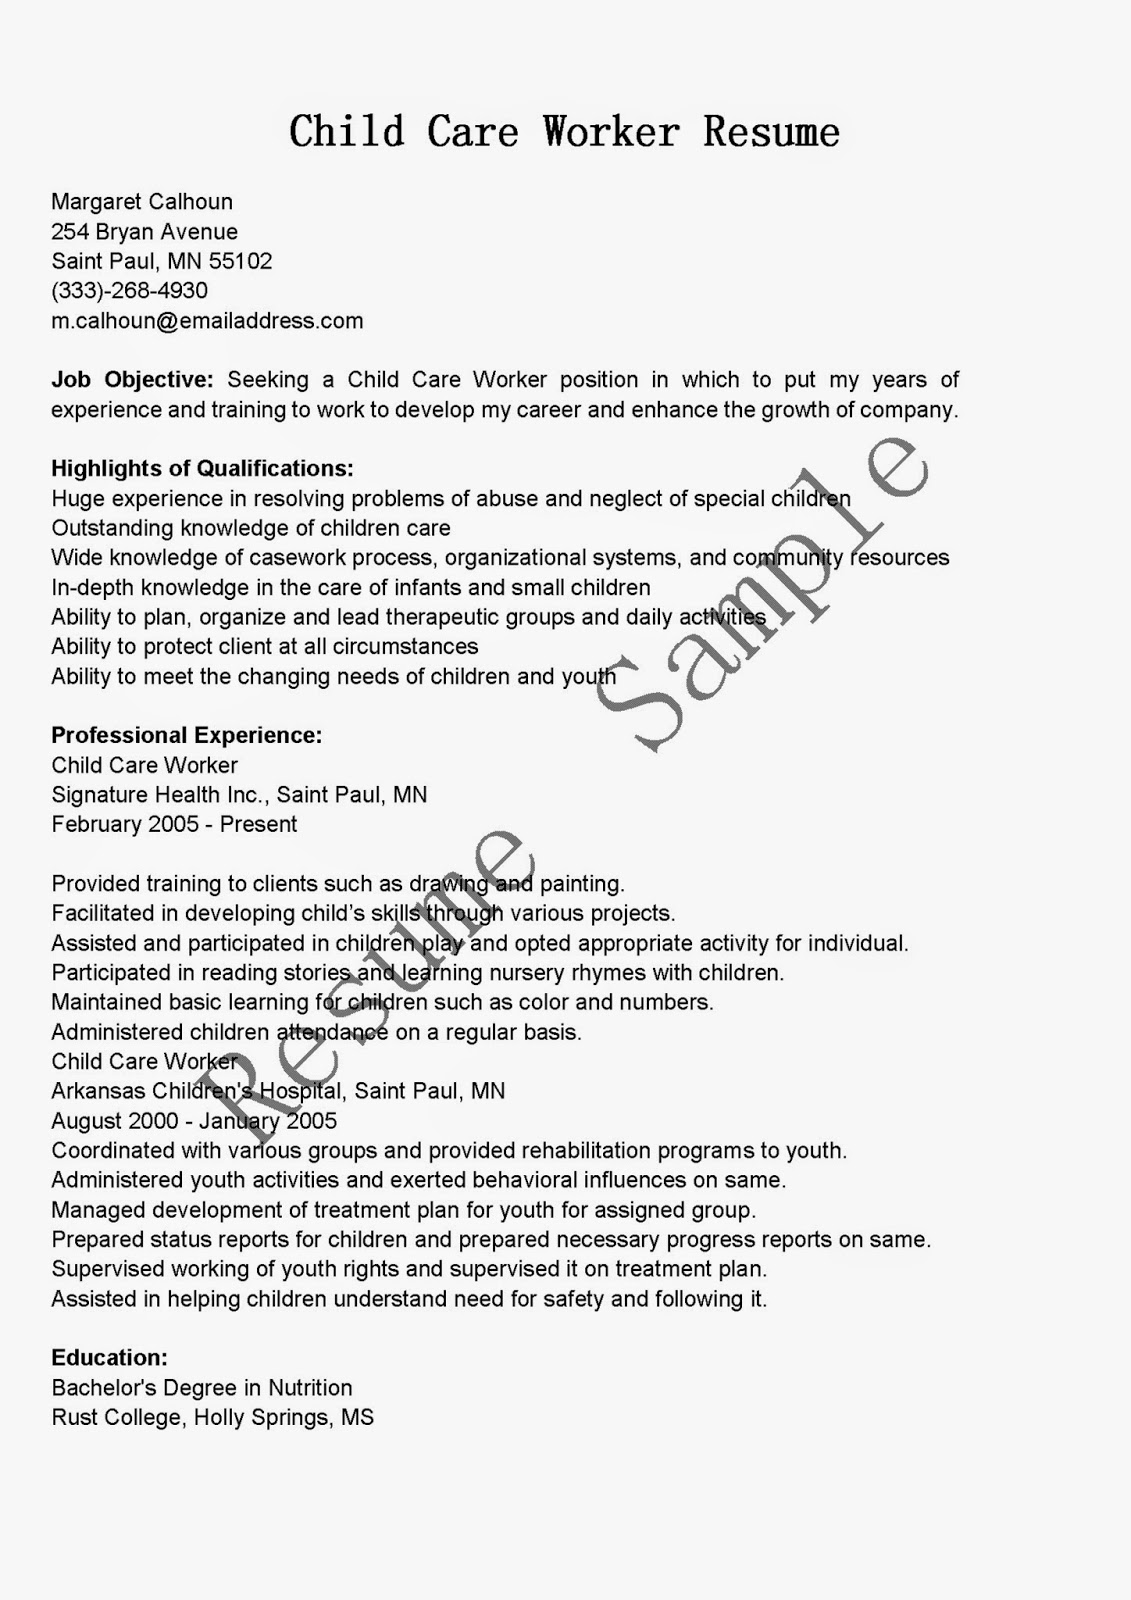 Development Worker Cover Letter | Child Care Worker Description ...